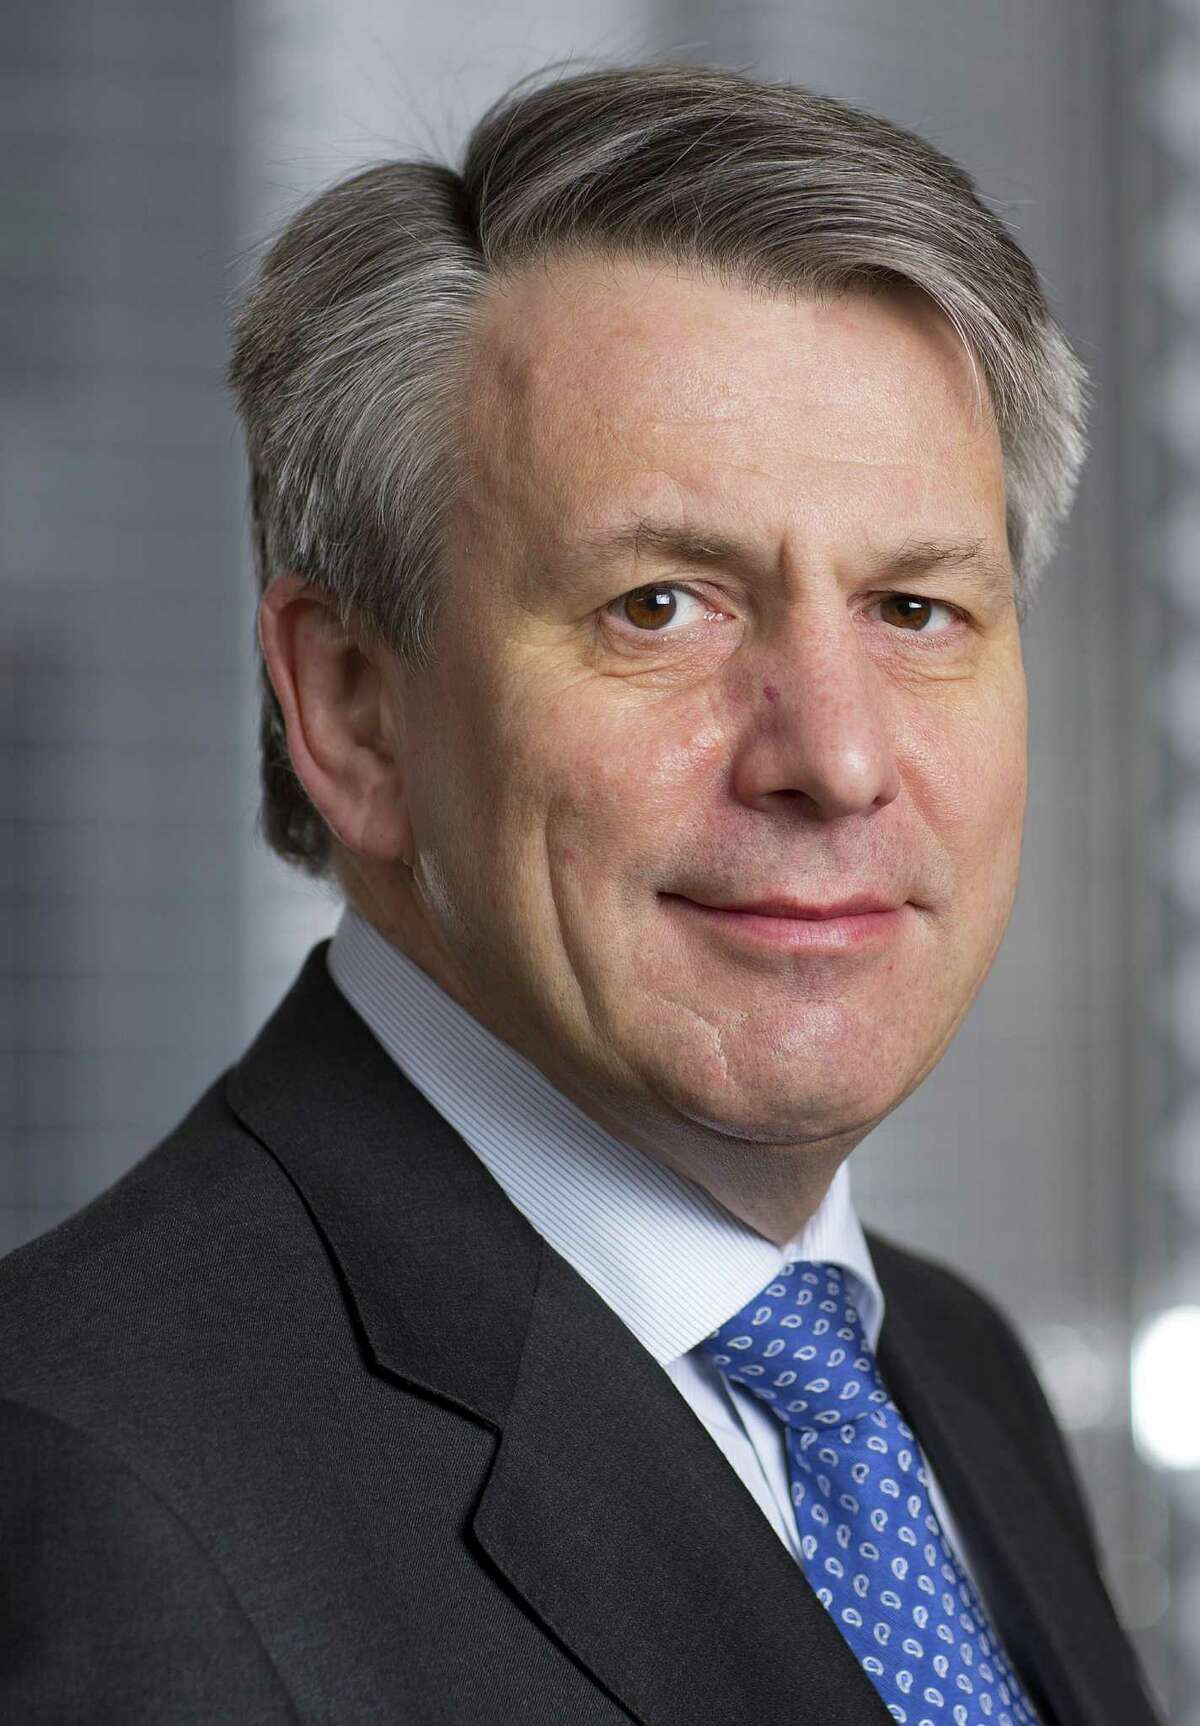 """This undated handout picture received from Royal Dutch Shell plc on July 9, 2013 shows the companys' newly appointed chief executive Ben van Beurden posing for a photograph. Shell issued a severe profits warning on January 17, 2014 blaming exploration costs, pressures across the oil industry and disruption to Nigerian output, and its shares fell sharply. """"Our 2013 performance was not what I expect from Shell,"""" said chief executive Ben van Beurden in the gloomy update, published just two weeks after he took the helm at the Anglo-Dutch energy major. RESTRICTED TO EDITORIAL USE - MANDATORY CREDIT """" AFP PHOTO/ROYAL DUTCH SHELL/REINIER GERRITSEN """" - NO MARKETING NO ADVERTISING CAMPAIGNS - DISTRIBUTED AS A SERVICE TO CLIENTSREINIER GERRITSEN/AFP/Getty Images"""